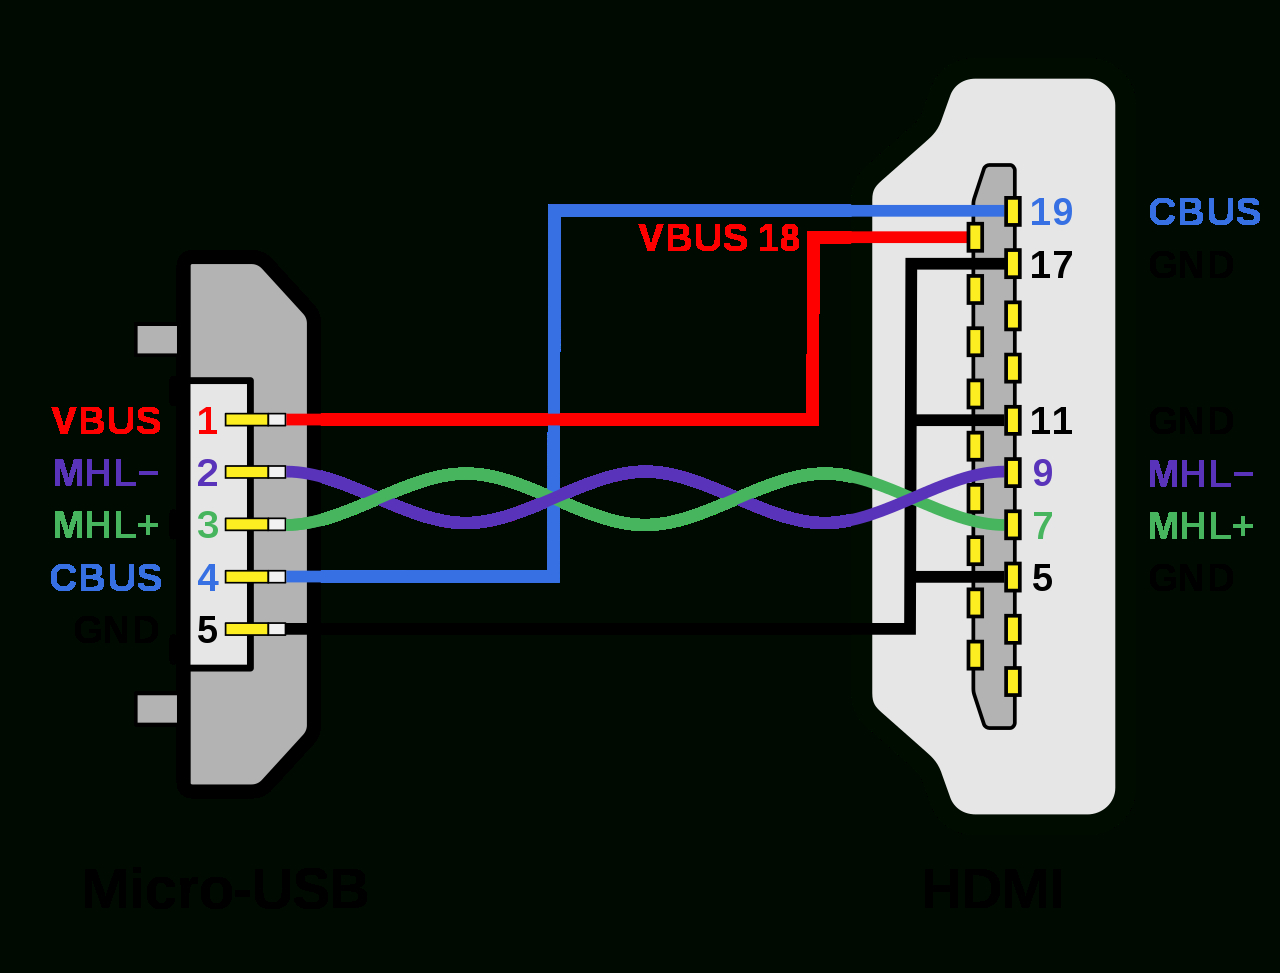 File:mhl Micro-Usb - Hdmi Wiring Diagram.svg - Wikimedia Commons - Micro Usb To Hdmi Wiring Diagram